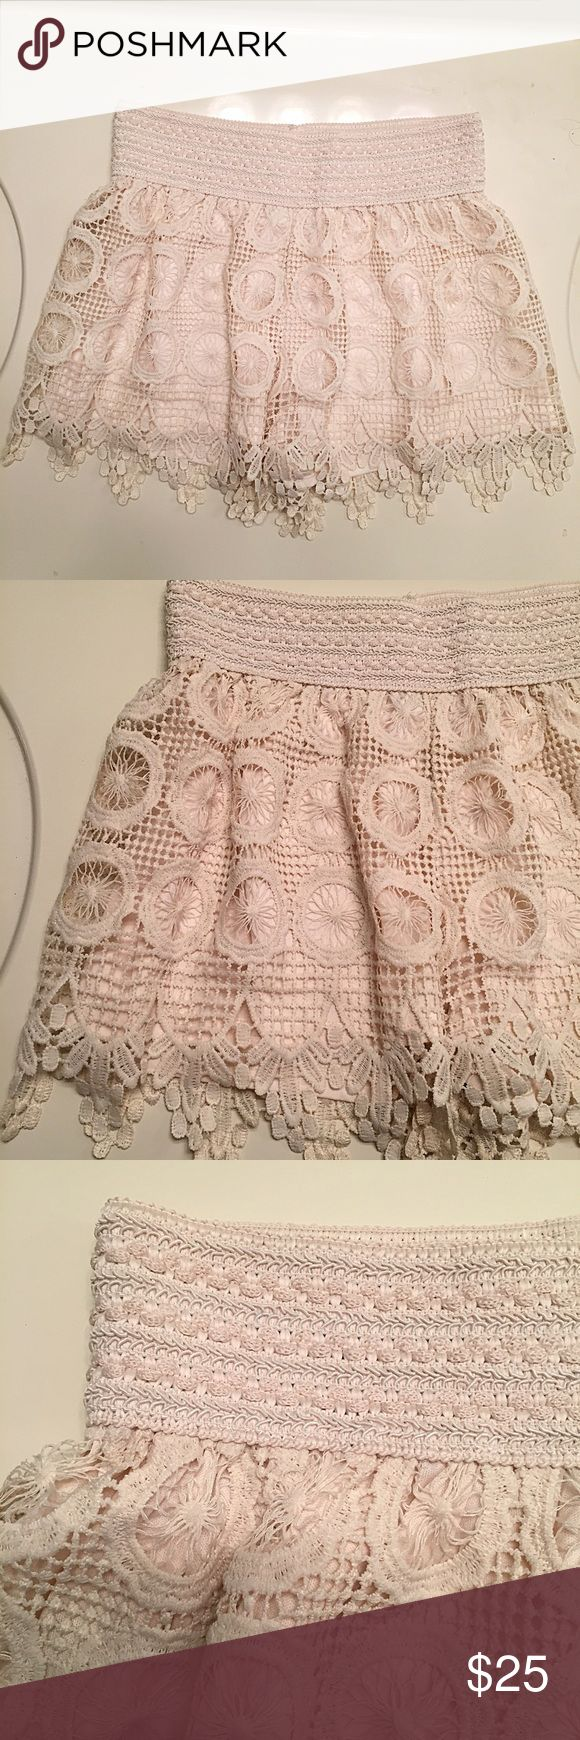 NEW cream lace shorts size Medium Brand new, never worn and still with tags. Unique intricate lace shorts with wheel-like patterns. Elastic waist line for a nice fit. Women's size Medium. Stellaluce Shorts